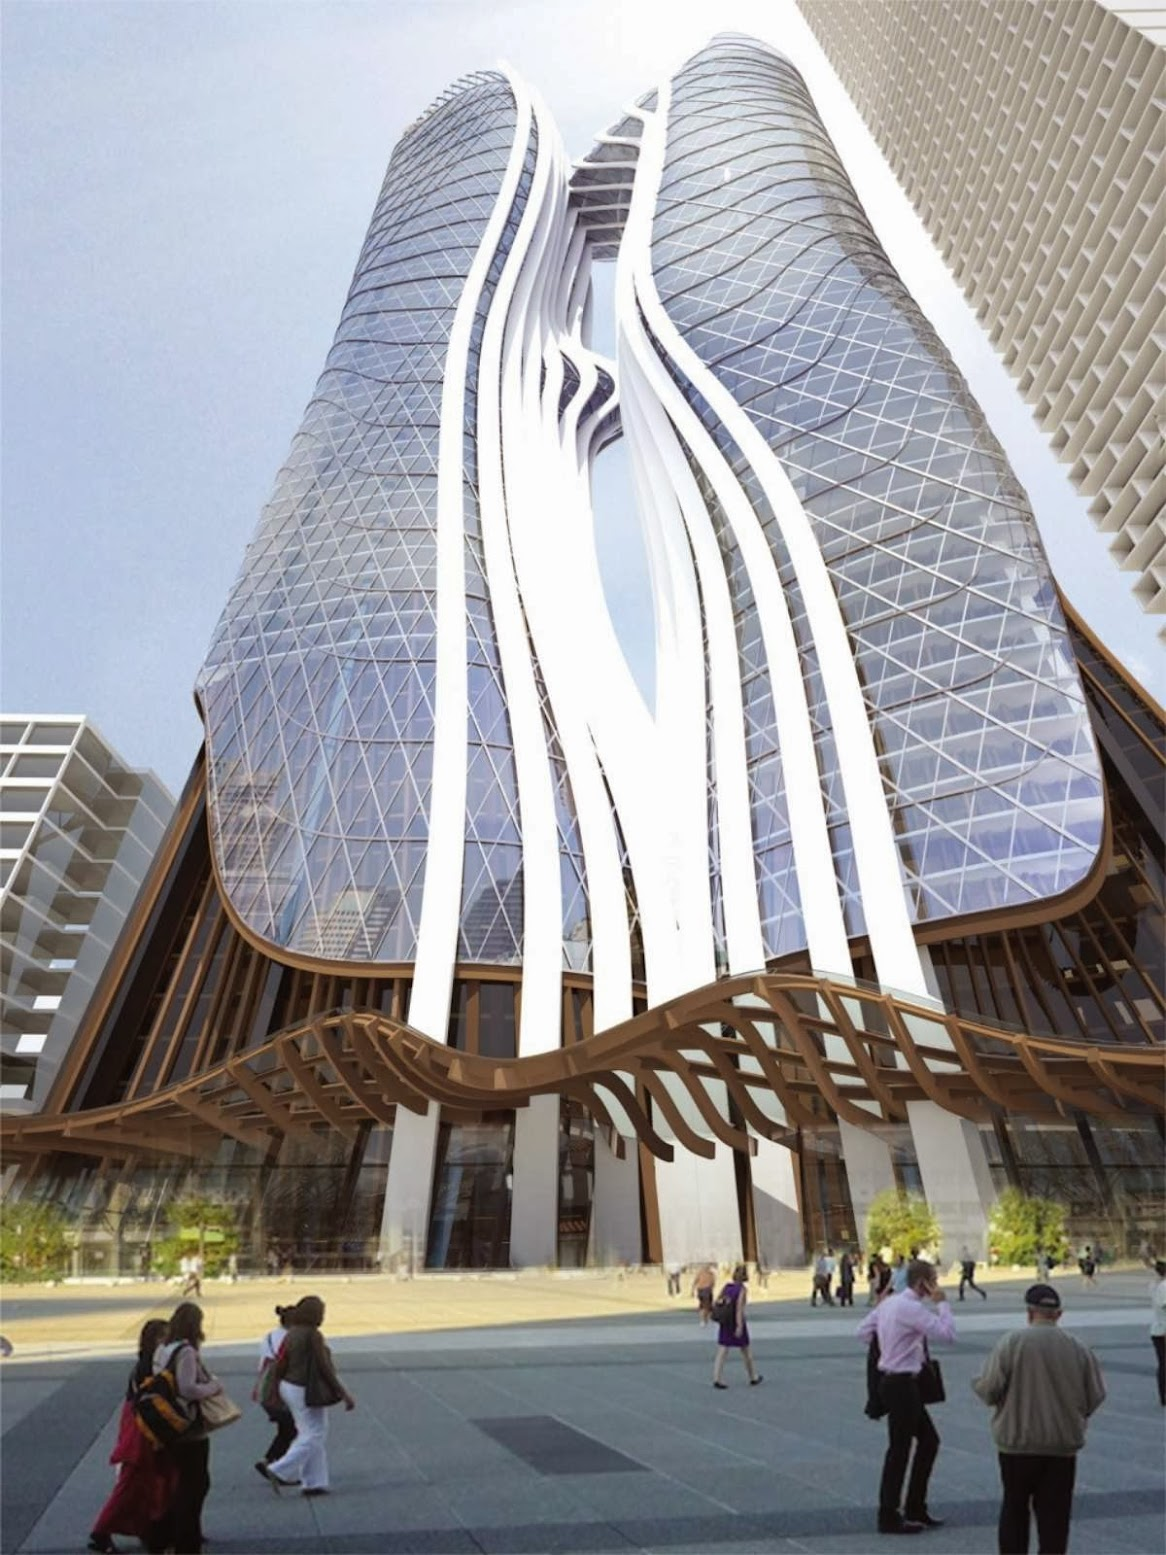 Parramatta Square Stages 5 6 Towers by Esan